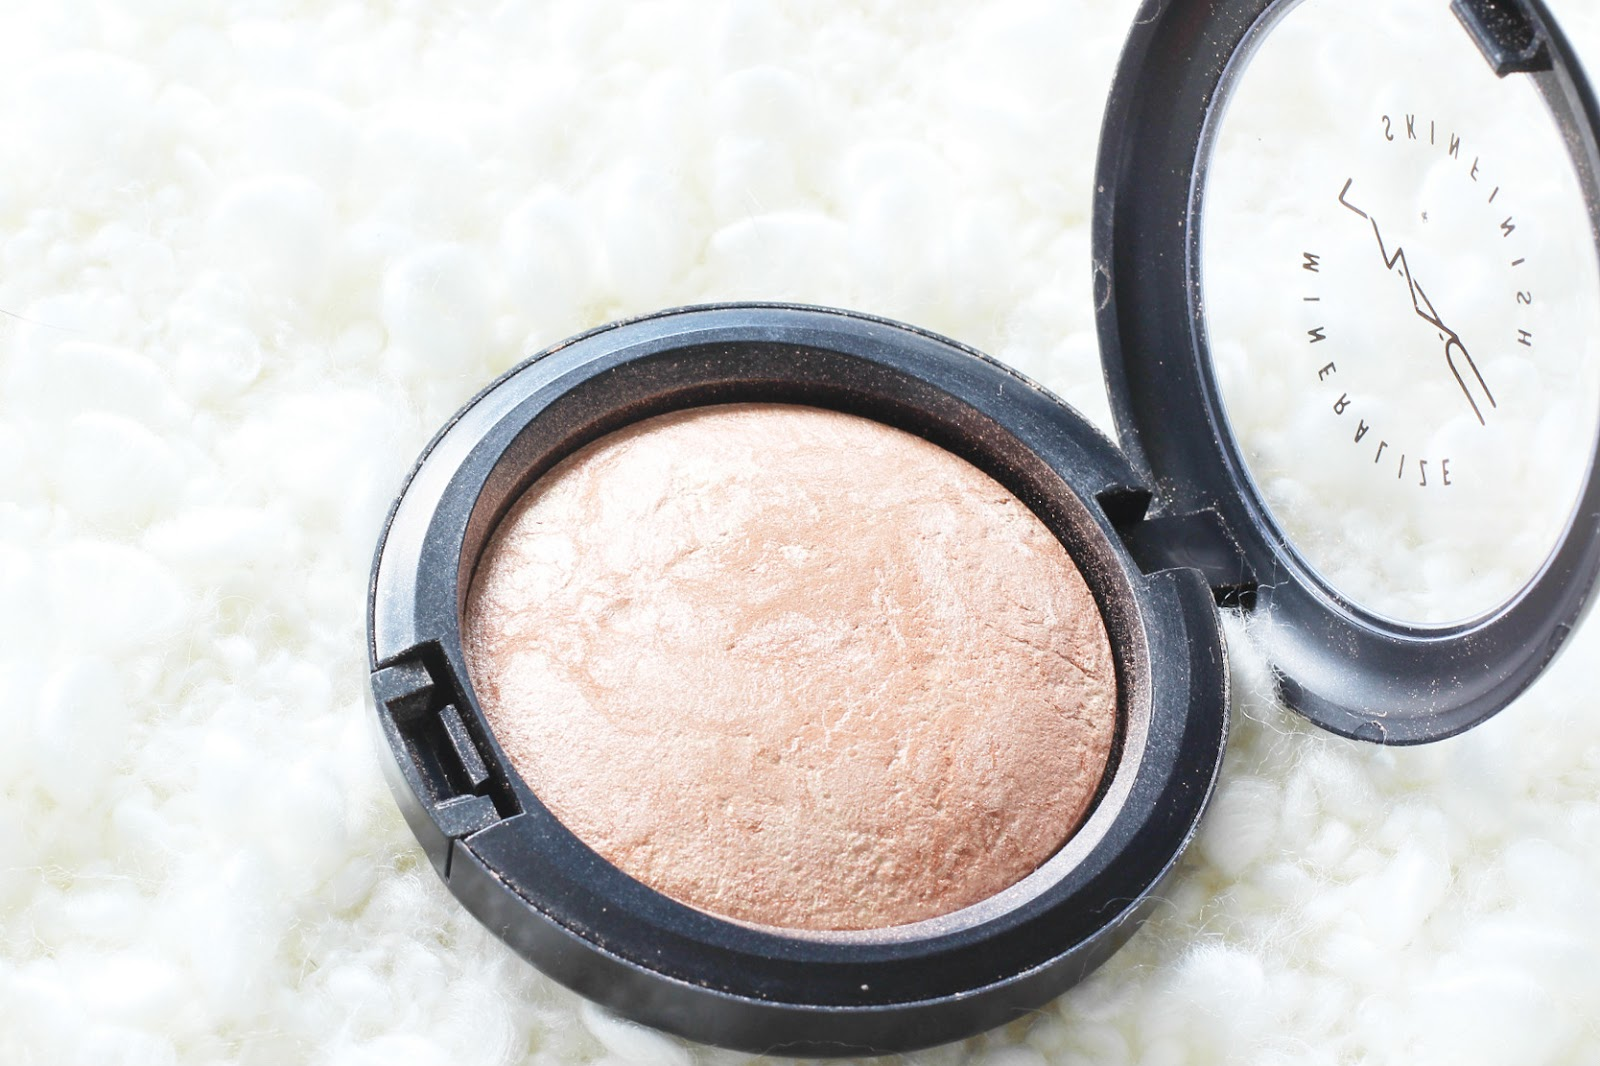 MAC Soft and Gentle Mineralize Skin Finish Review for Pale Skin